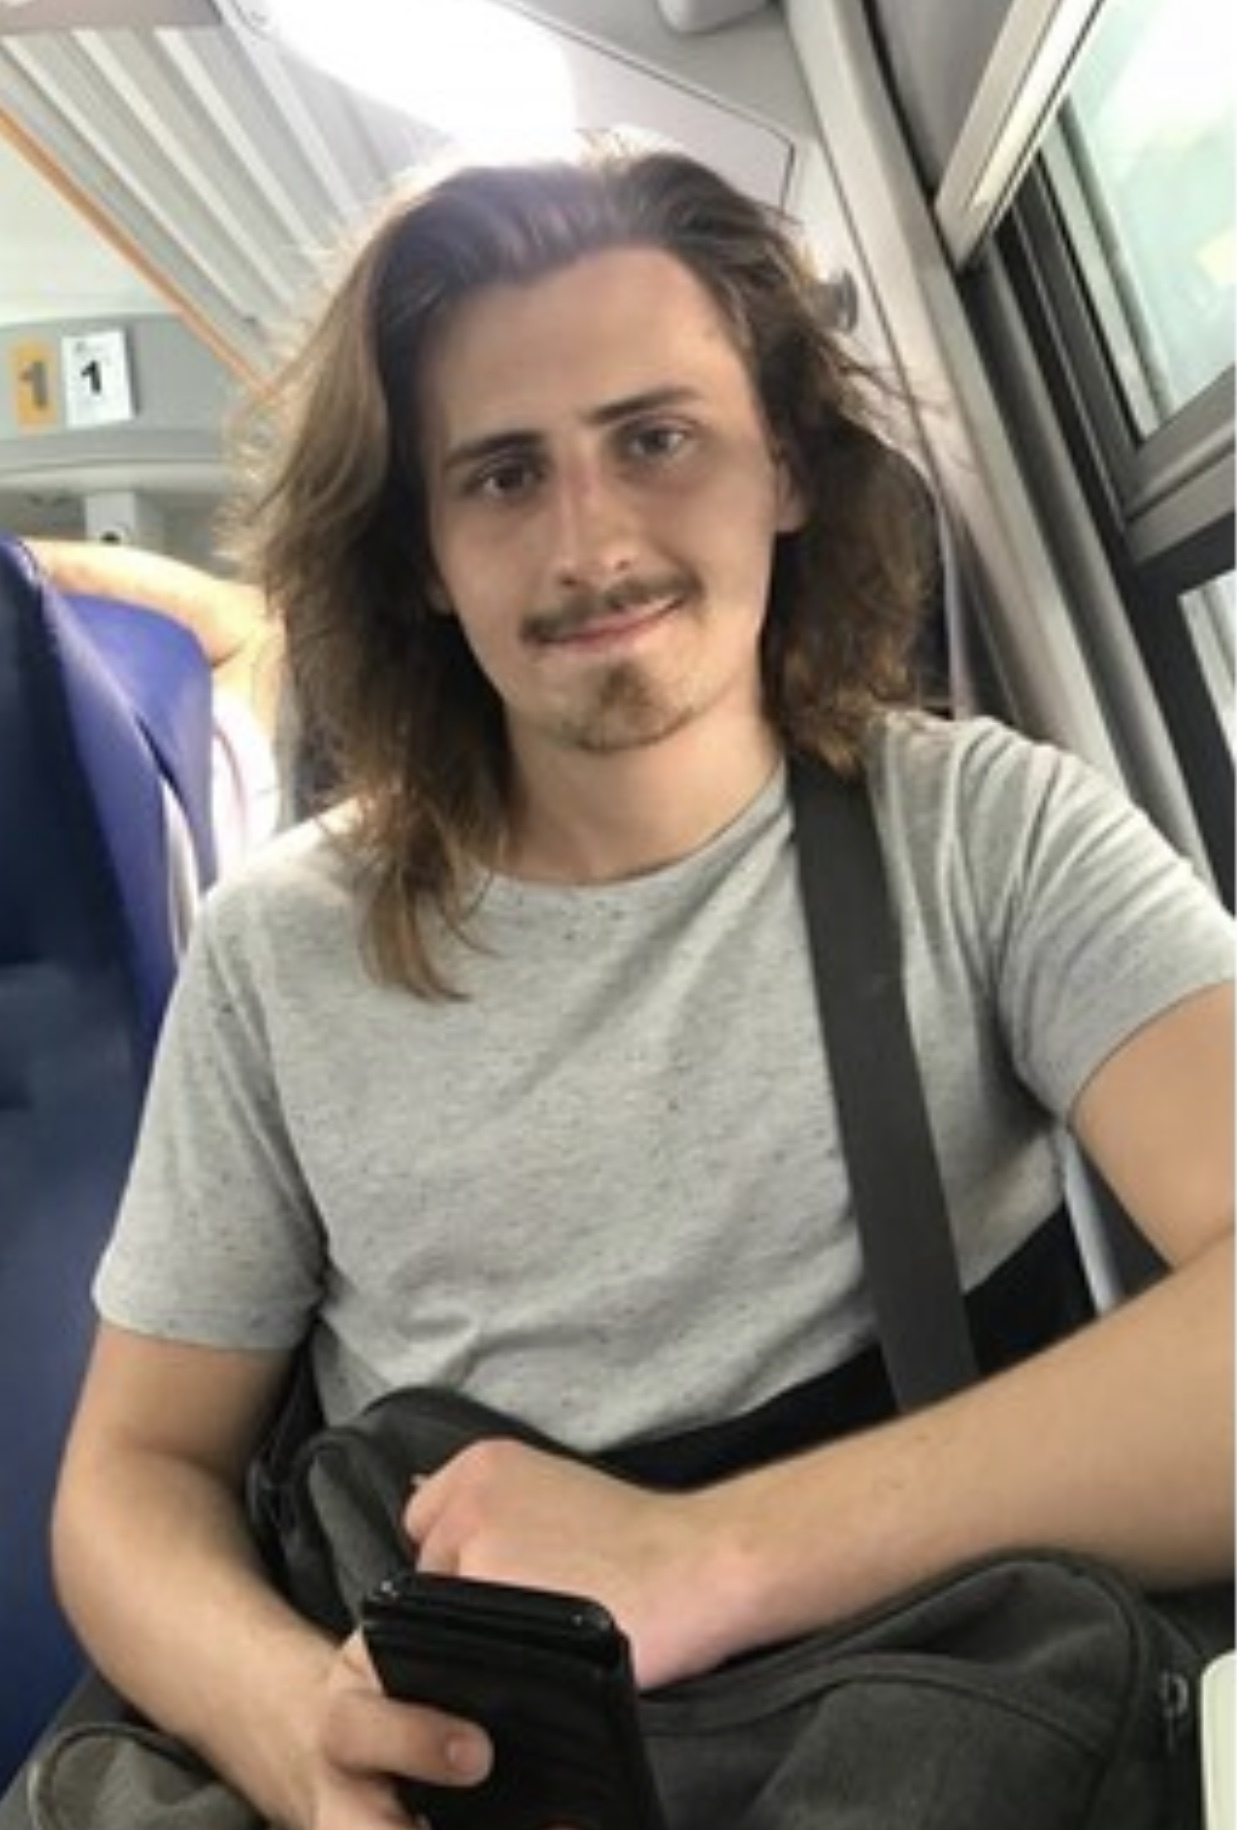 Louie Chapman-Ford, 20, will be shaving and donating his hair to charity in honour of his sister